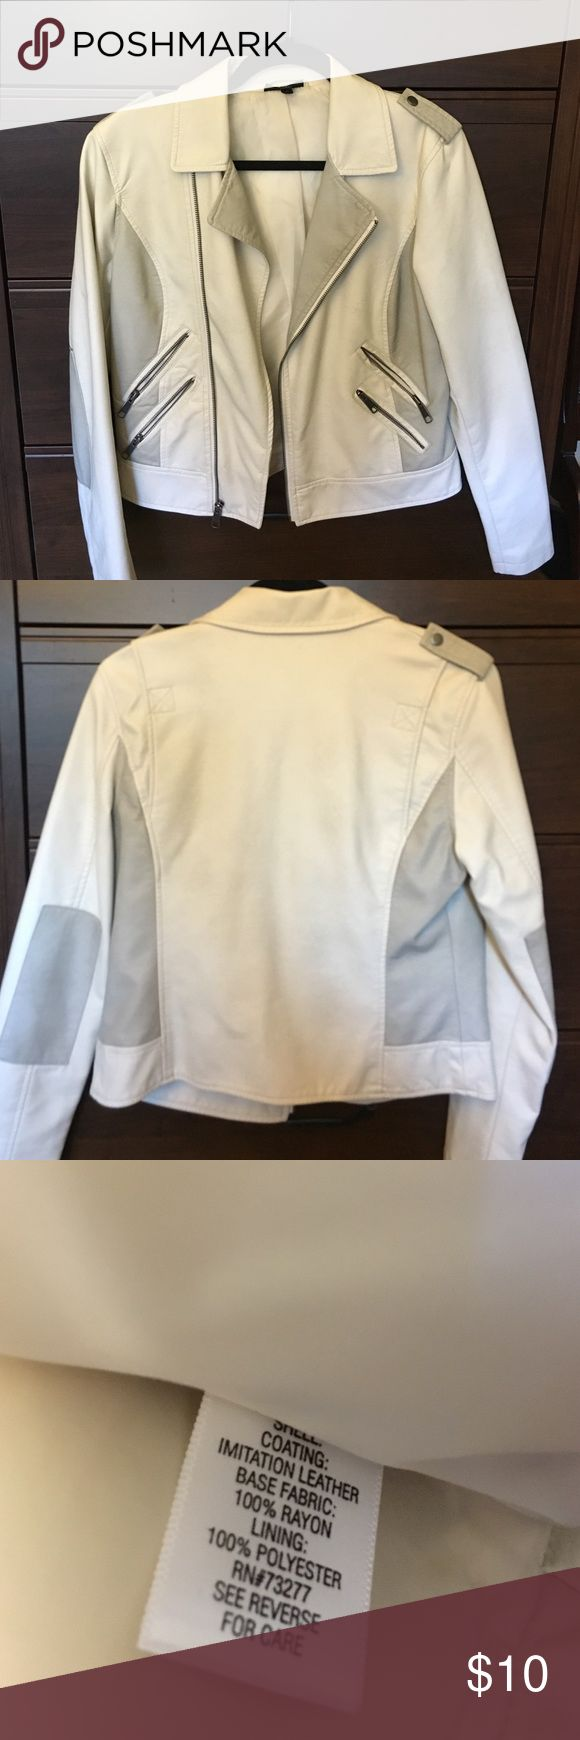 Apt.9 Imitation Leather Jacket Really cute white moto jacket! Worn it a few times, and then fell into the back of the closet for a long time. Functional double zippered pockets and soft material! Good condition, apart from small indent on the left breast from the zipper pressing into the fake leather for so long (see photo). Selling as is. Let me know if you have any questions! Apt. 9 Jackets & Coats